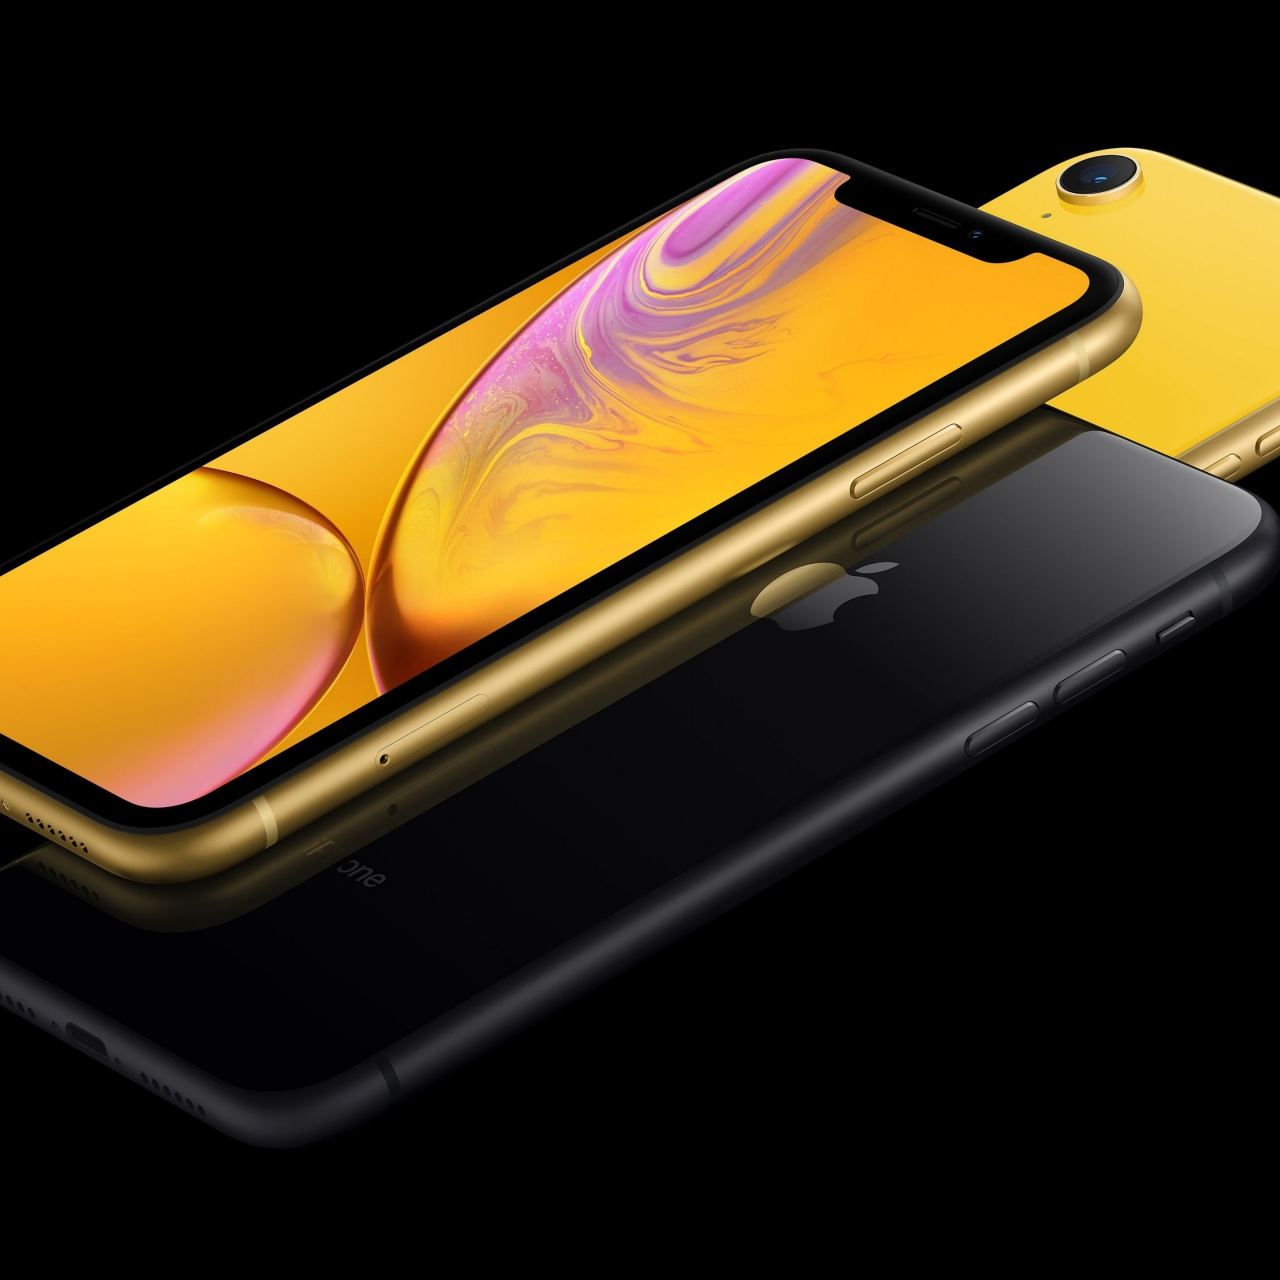 Other Dimensions Of This Wallpaper Yellow Iphone Xr Live 1212278 Hd Wallpaper Backgrounds Download